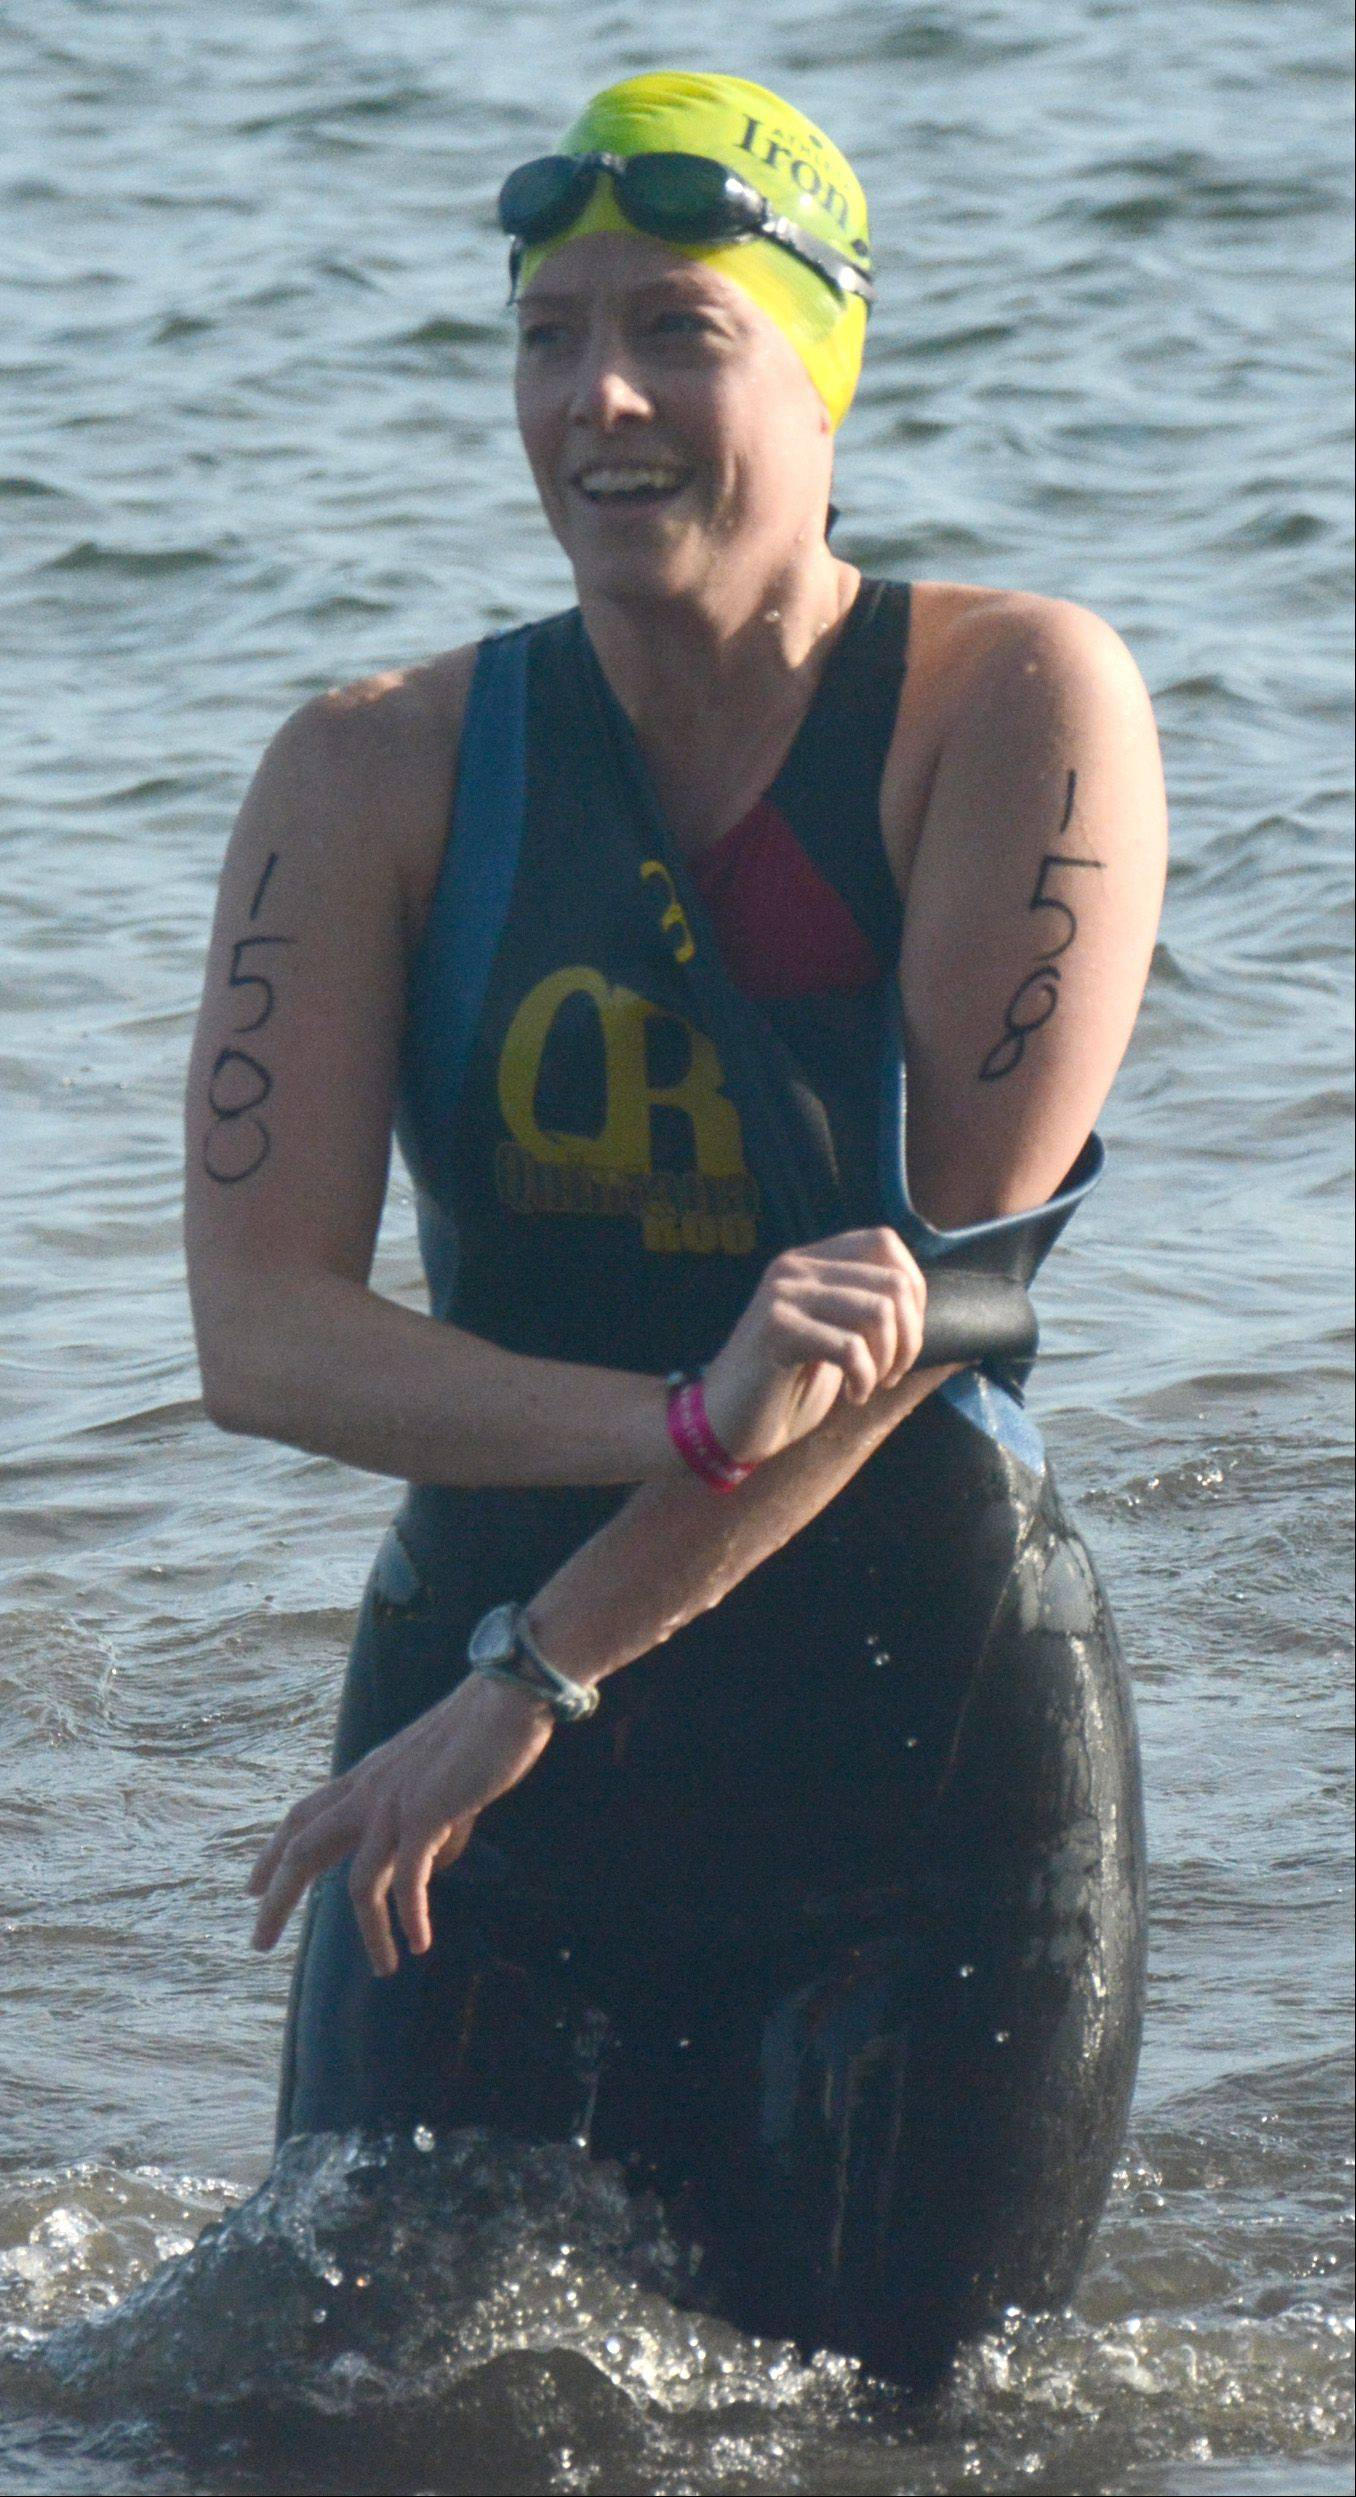 Bethany Richards, of Chicago, steps out of the water and prepares for the biking portion of the Athleta Iron Girl Triathlon in Lake Zurich Sunday.